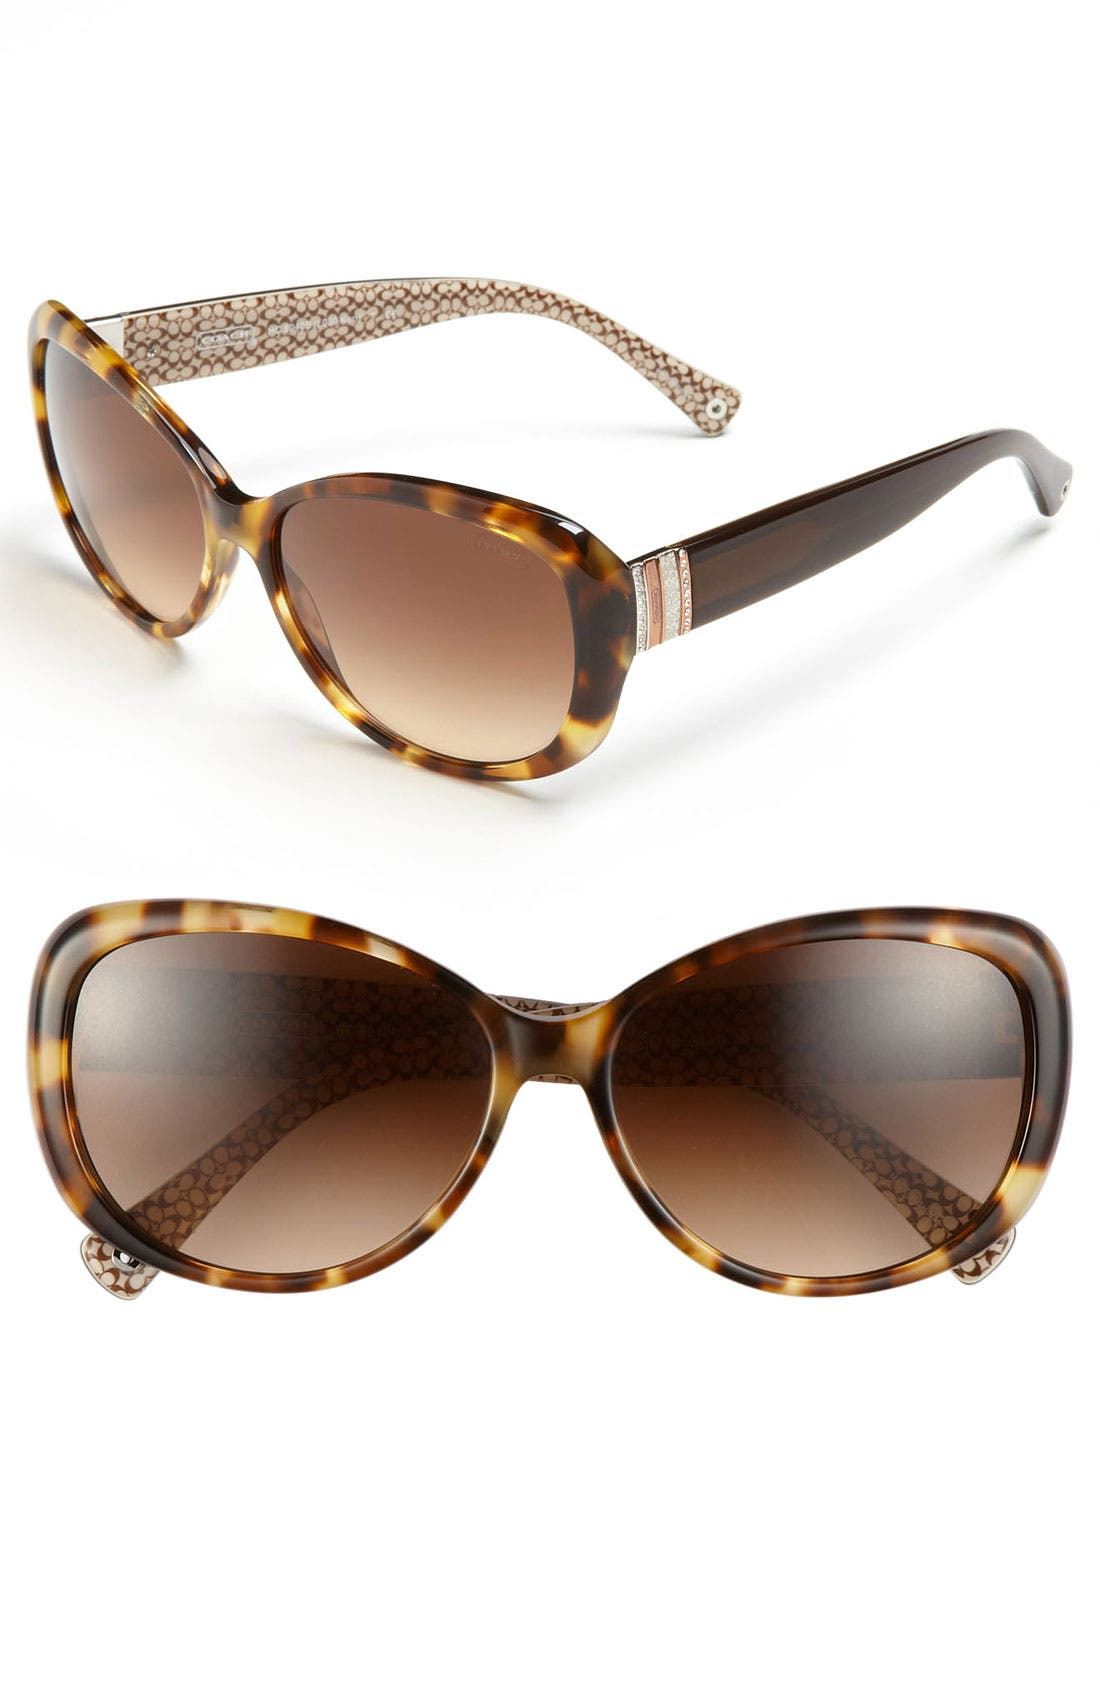 Alternate Image 1 Selected - COACH 58mm Oversized Sunglasses